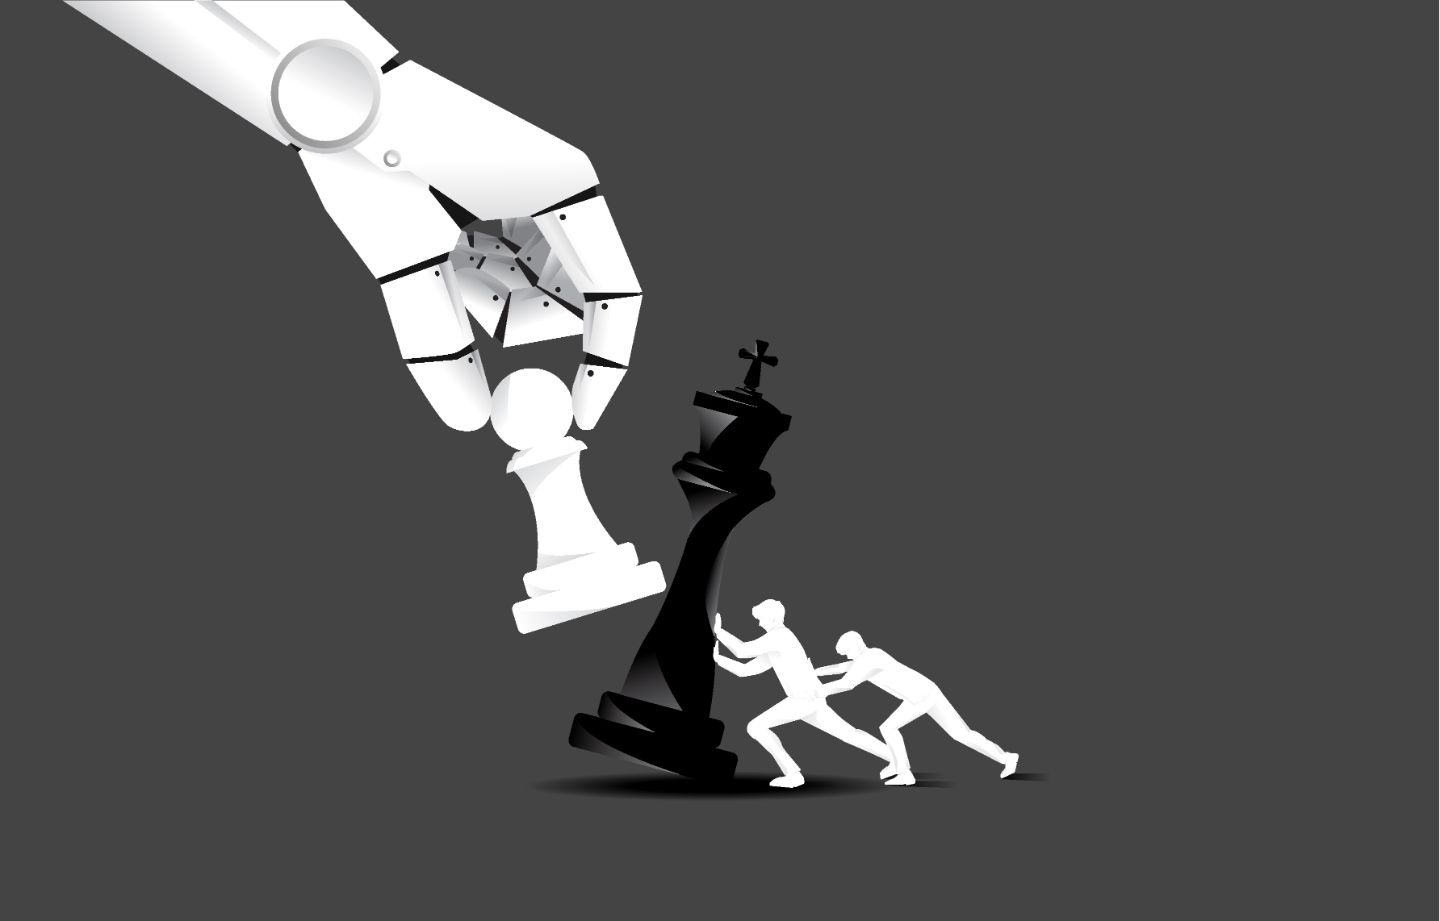 Chess pieces pushed by small paper figures